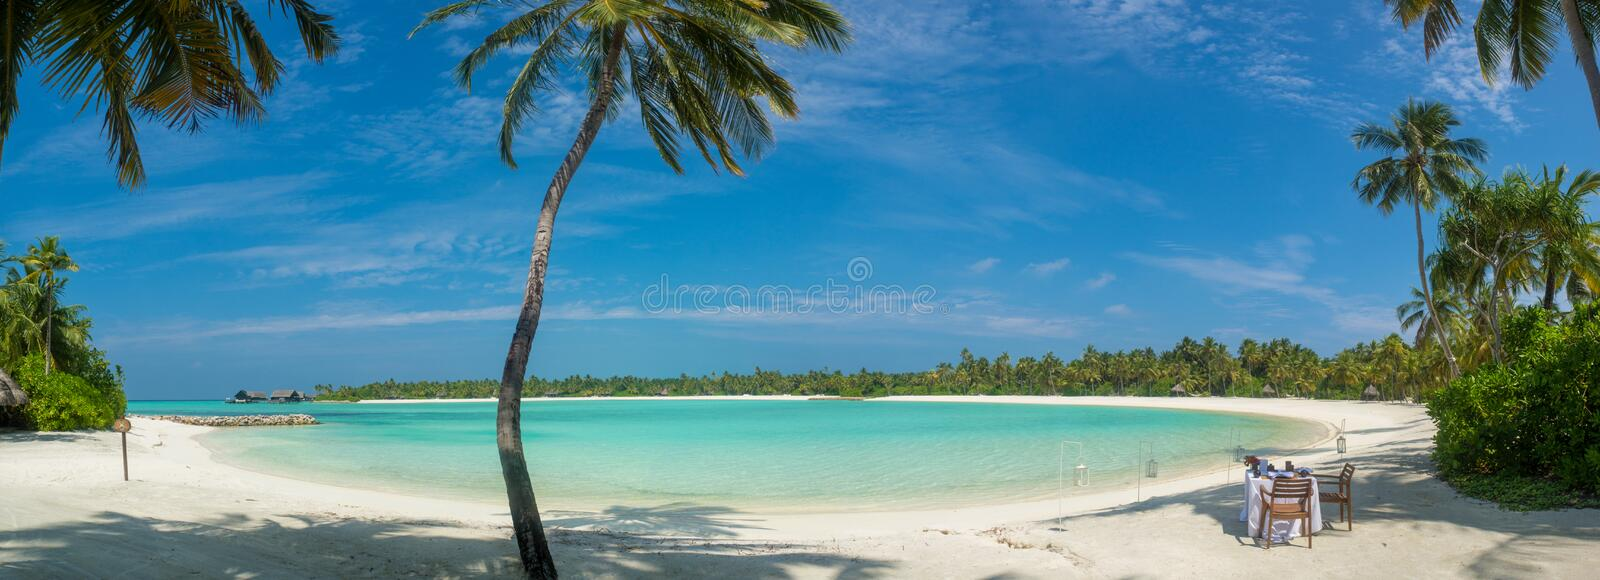 Maldives beach panorama view with breakfast setup royalty free stock photo